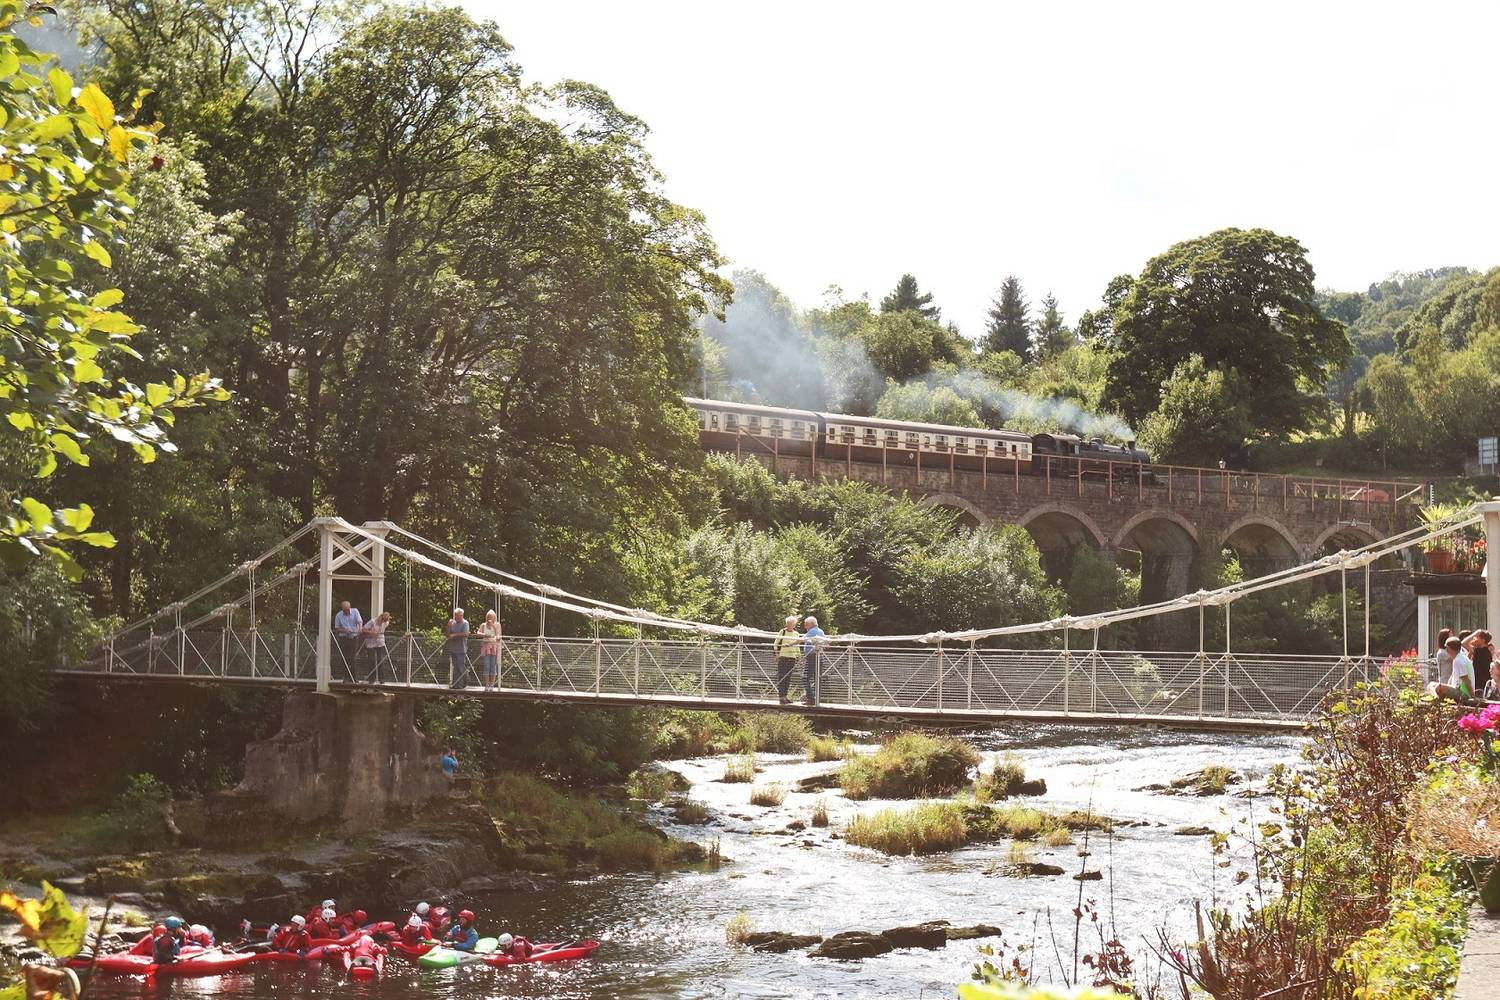 A photograph of chain bridge with a steam train in the background